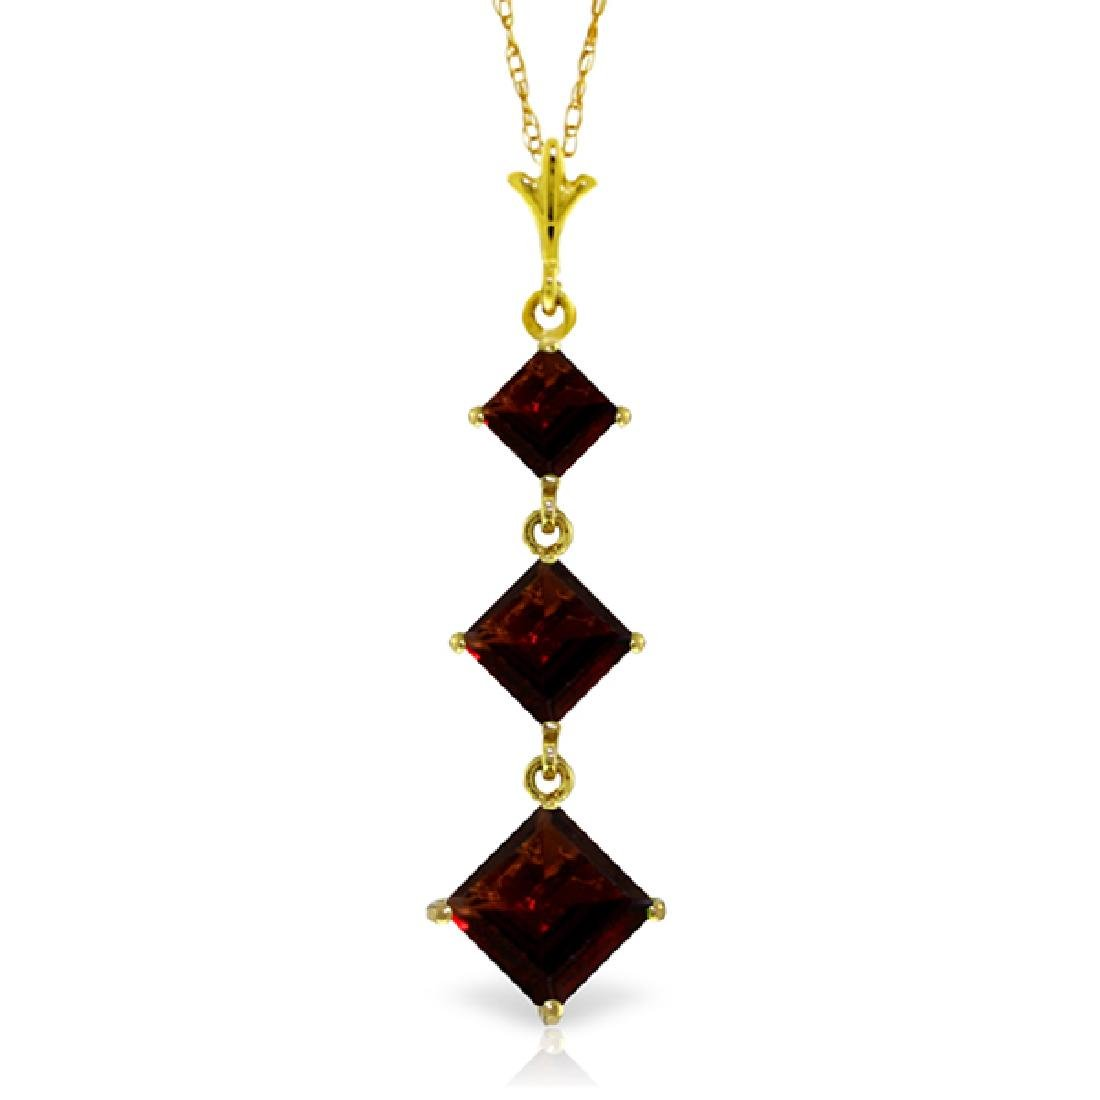 Genuine 2.4 ctw Garnet Necklace Jewelry 14KT Yellow